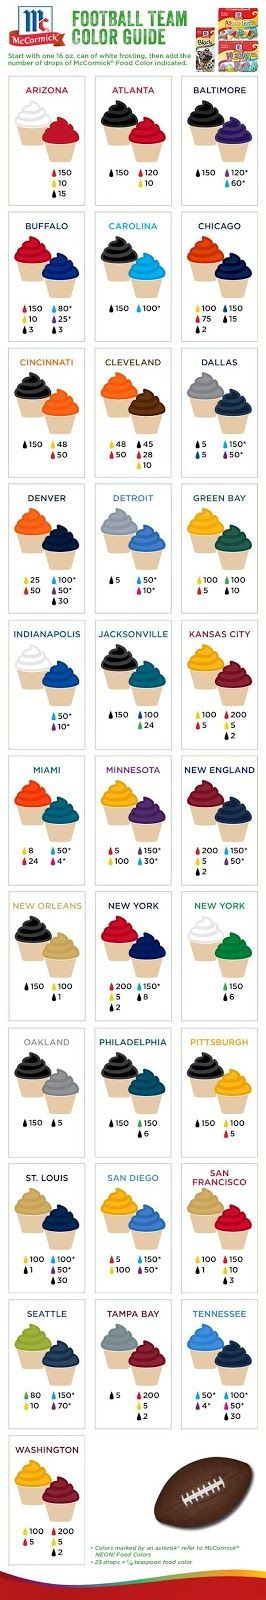 Make frosting for cupcakes and cakes and other desserts in your favorite Football Team's colors. McCormick has the exact formula.